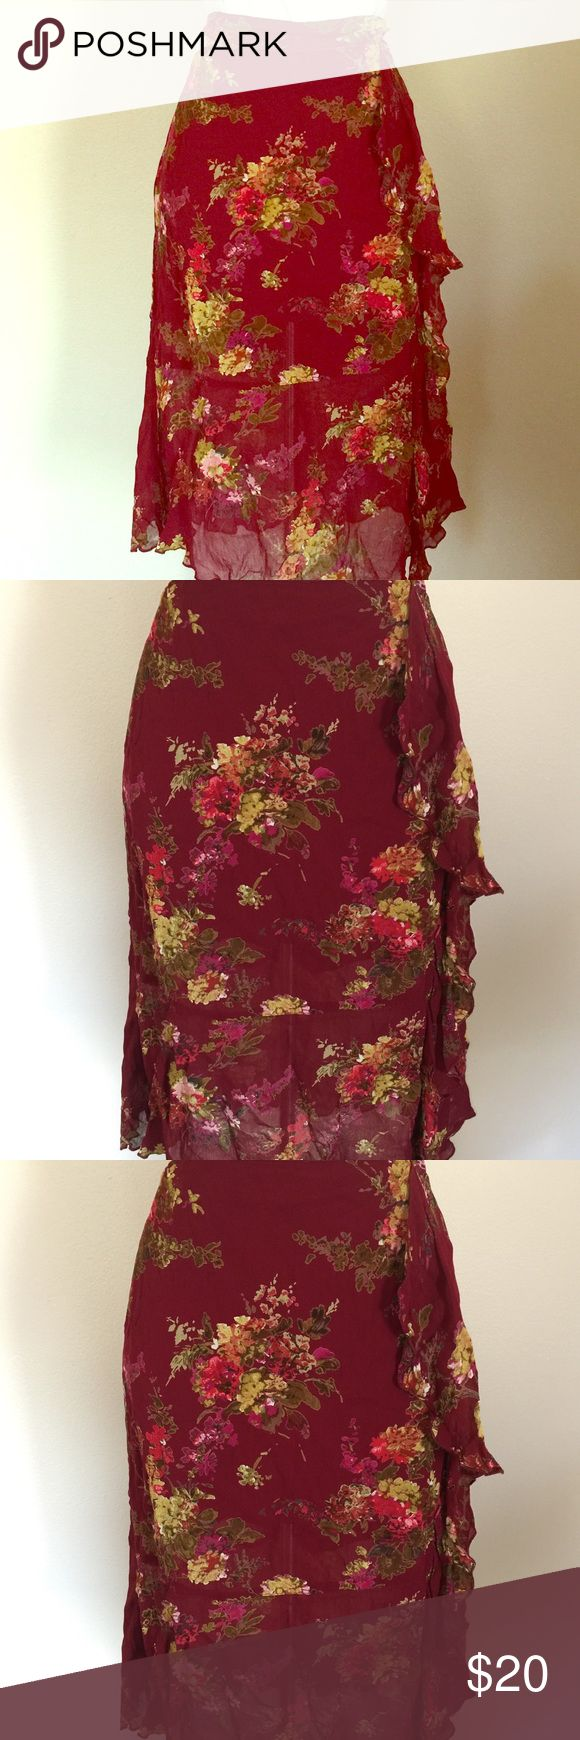 "Newport News Romantic Floral Burgundy Pencil Skirt Newport News Romantic Floral skirt in Burgundy. Skirt has a wrap front, with Ruffle trim. It is a pencil style skirt, made of rayon with a polyester lining. Great for work, or a date night. Worn and dry cleaned, it is in MINT condition. Tagged a size 12, it measures 32"" at the waist, 42"" at hip, and length is 27"" Newport News Skirts Midi"